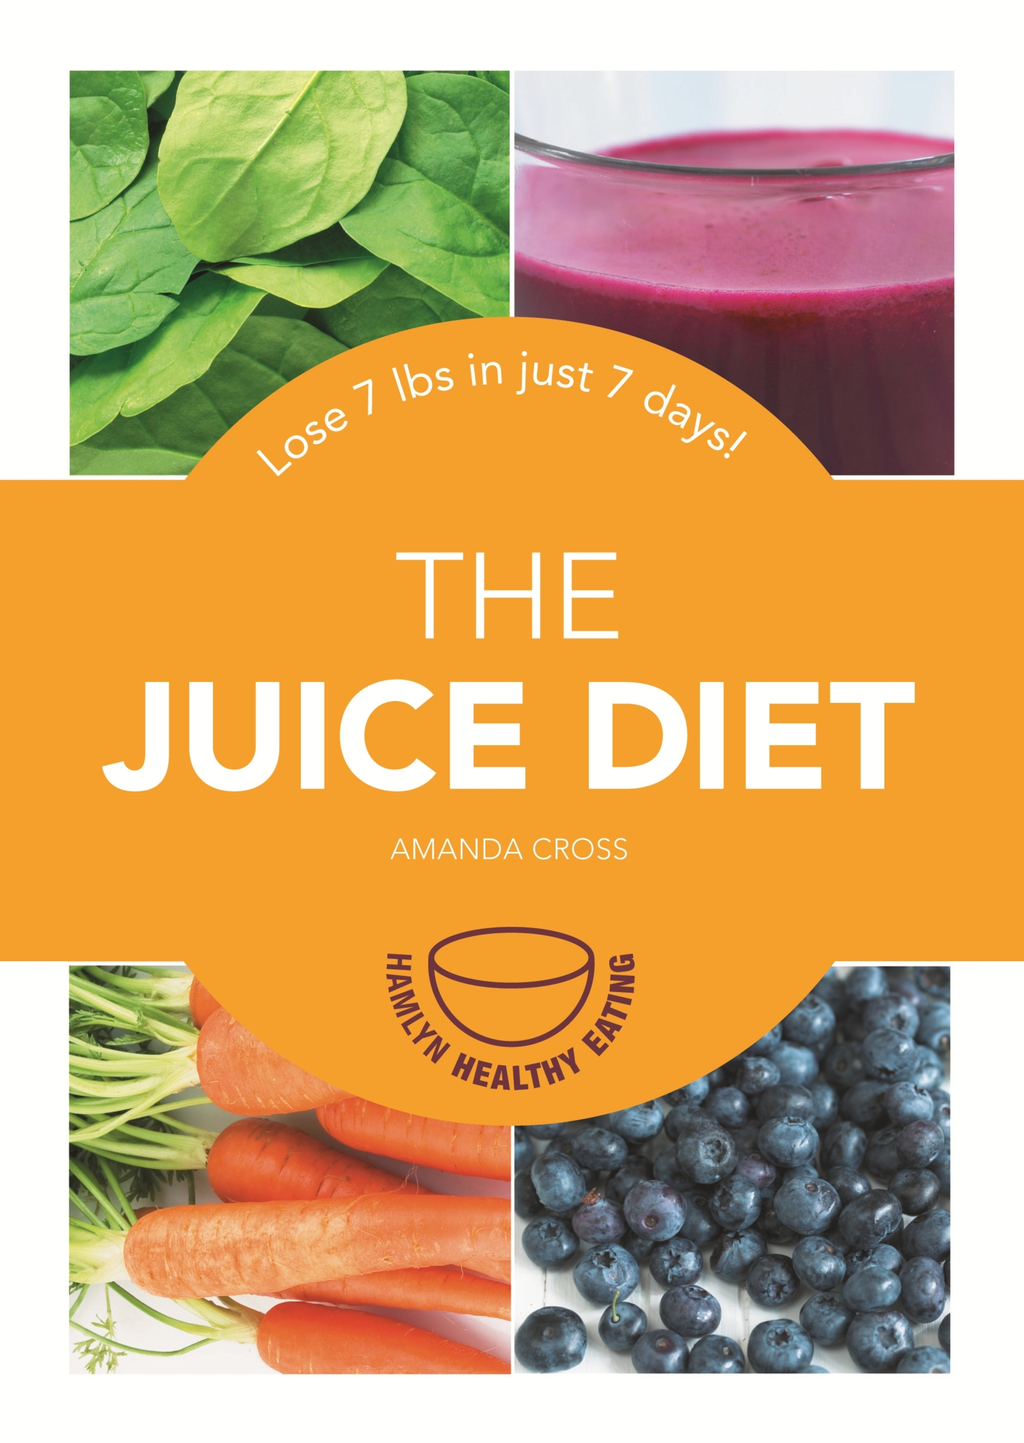 The Juice Diet Lose 7lbs in just 7 days!